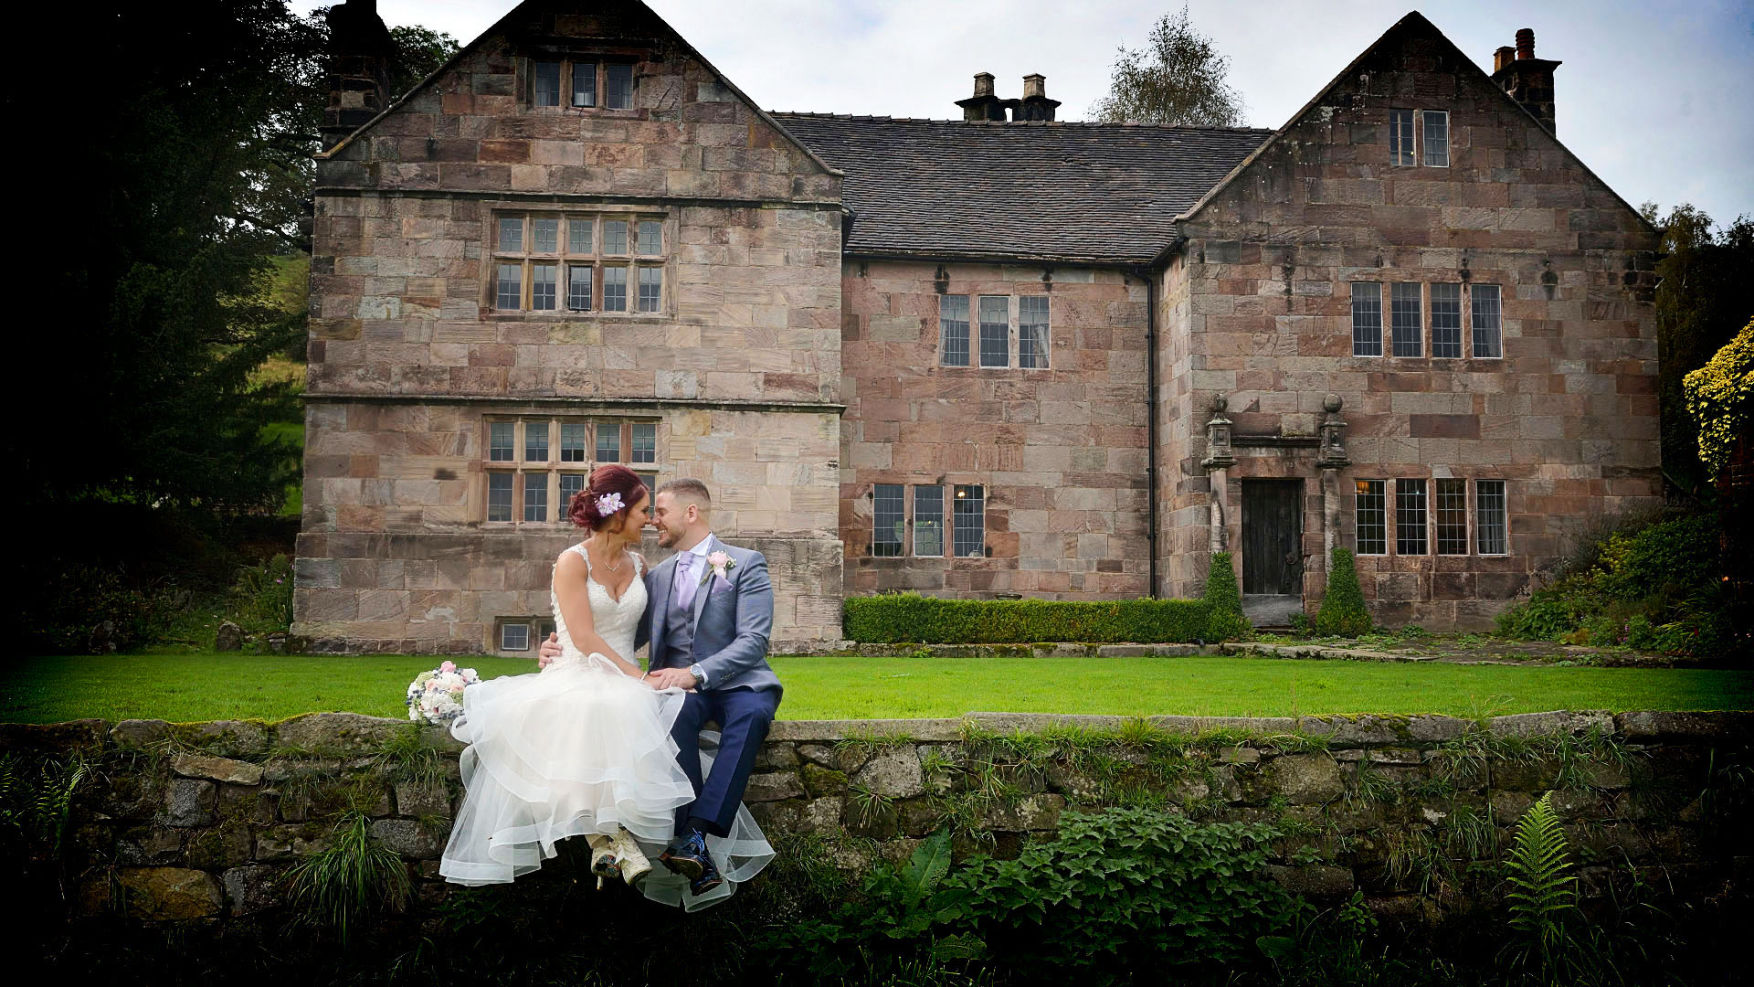 Wedding Photography Saffordshire, The Events Alrewas Hayes